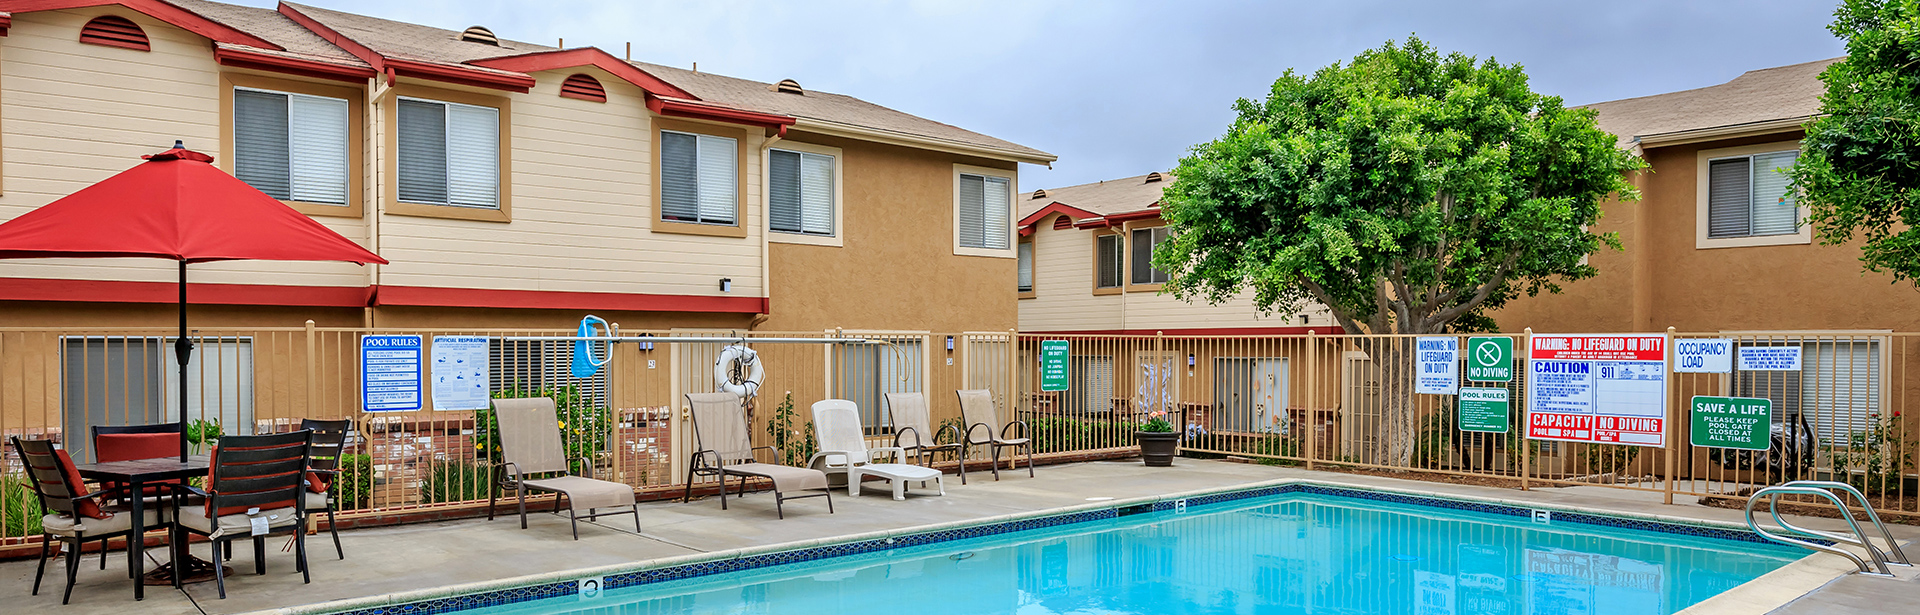 Shannon Wood Townhomes Apartments In El Cajon Ca